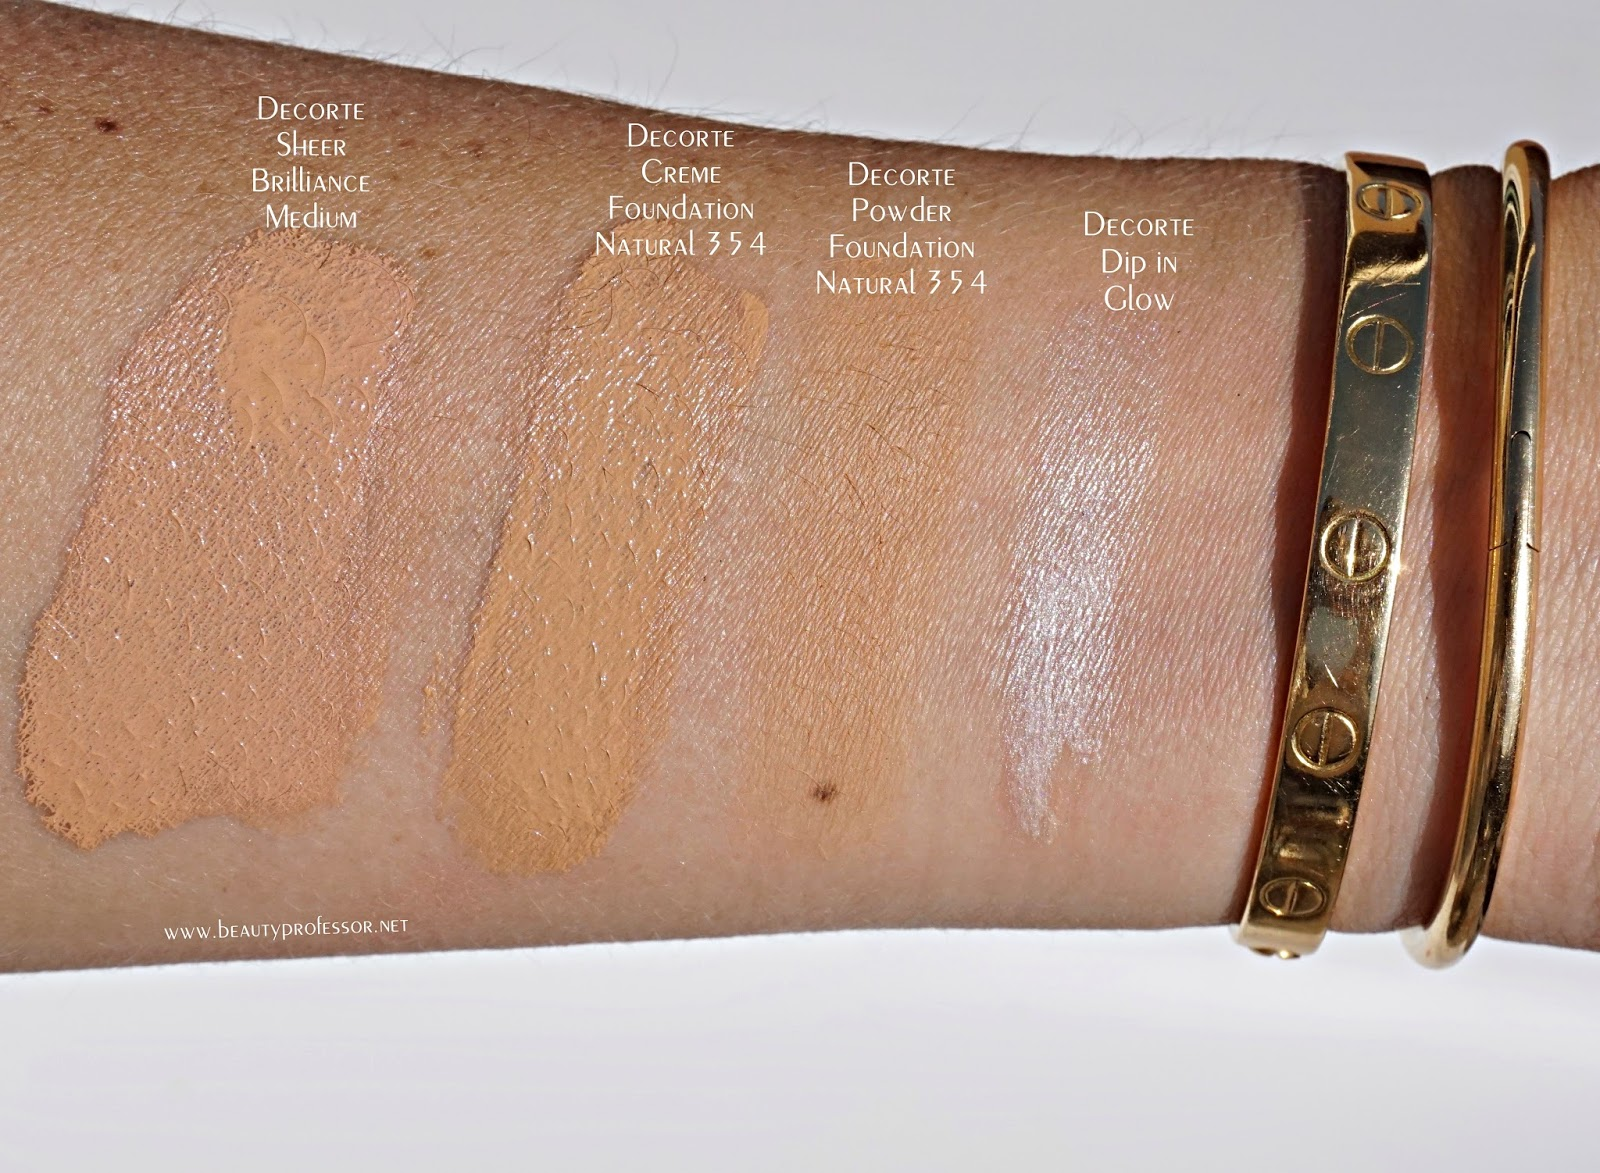 decorte makeup swatches